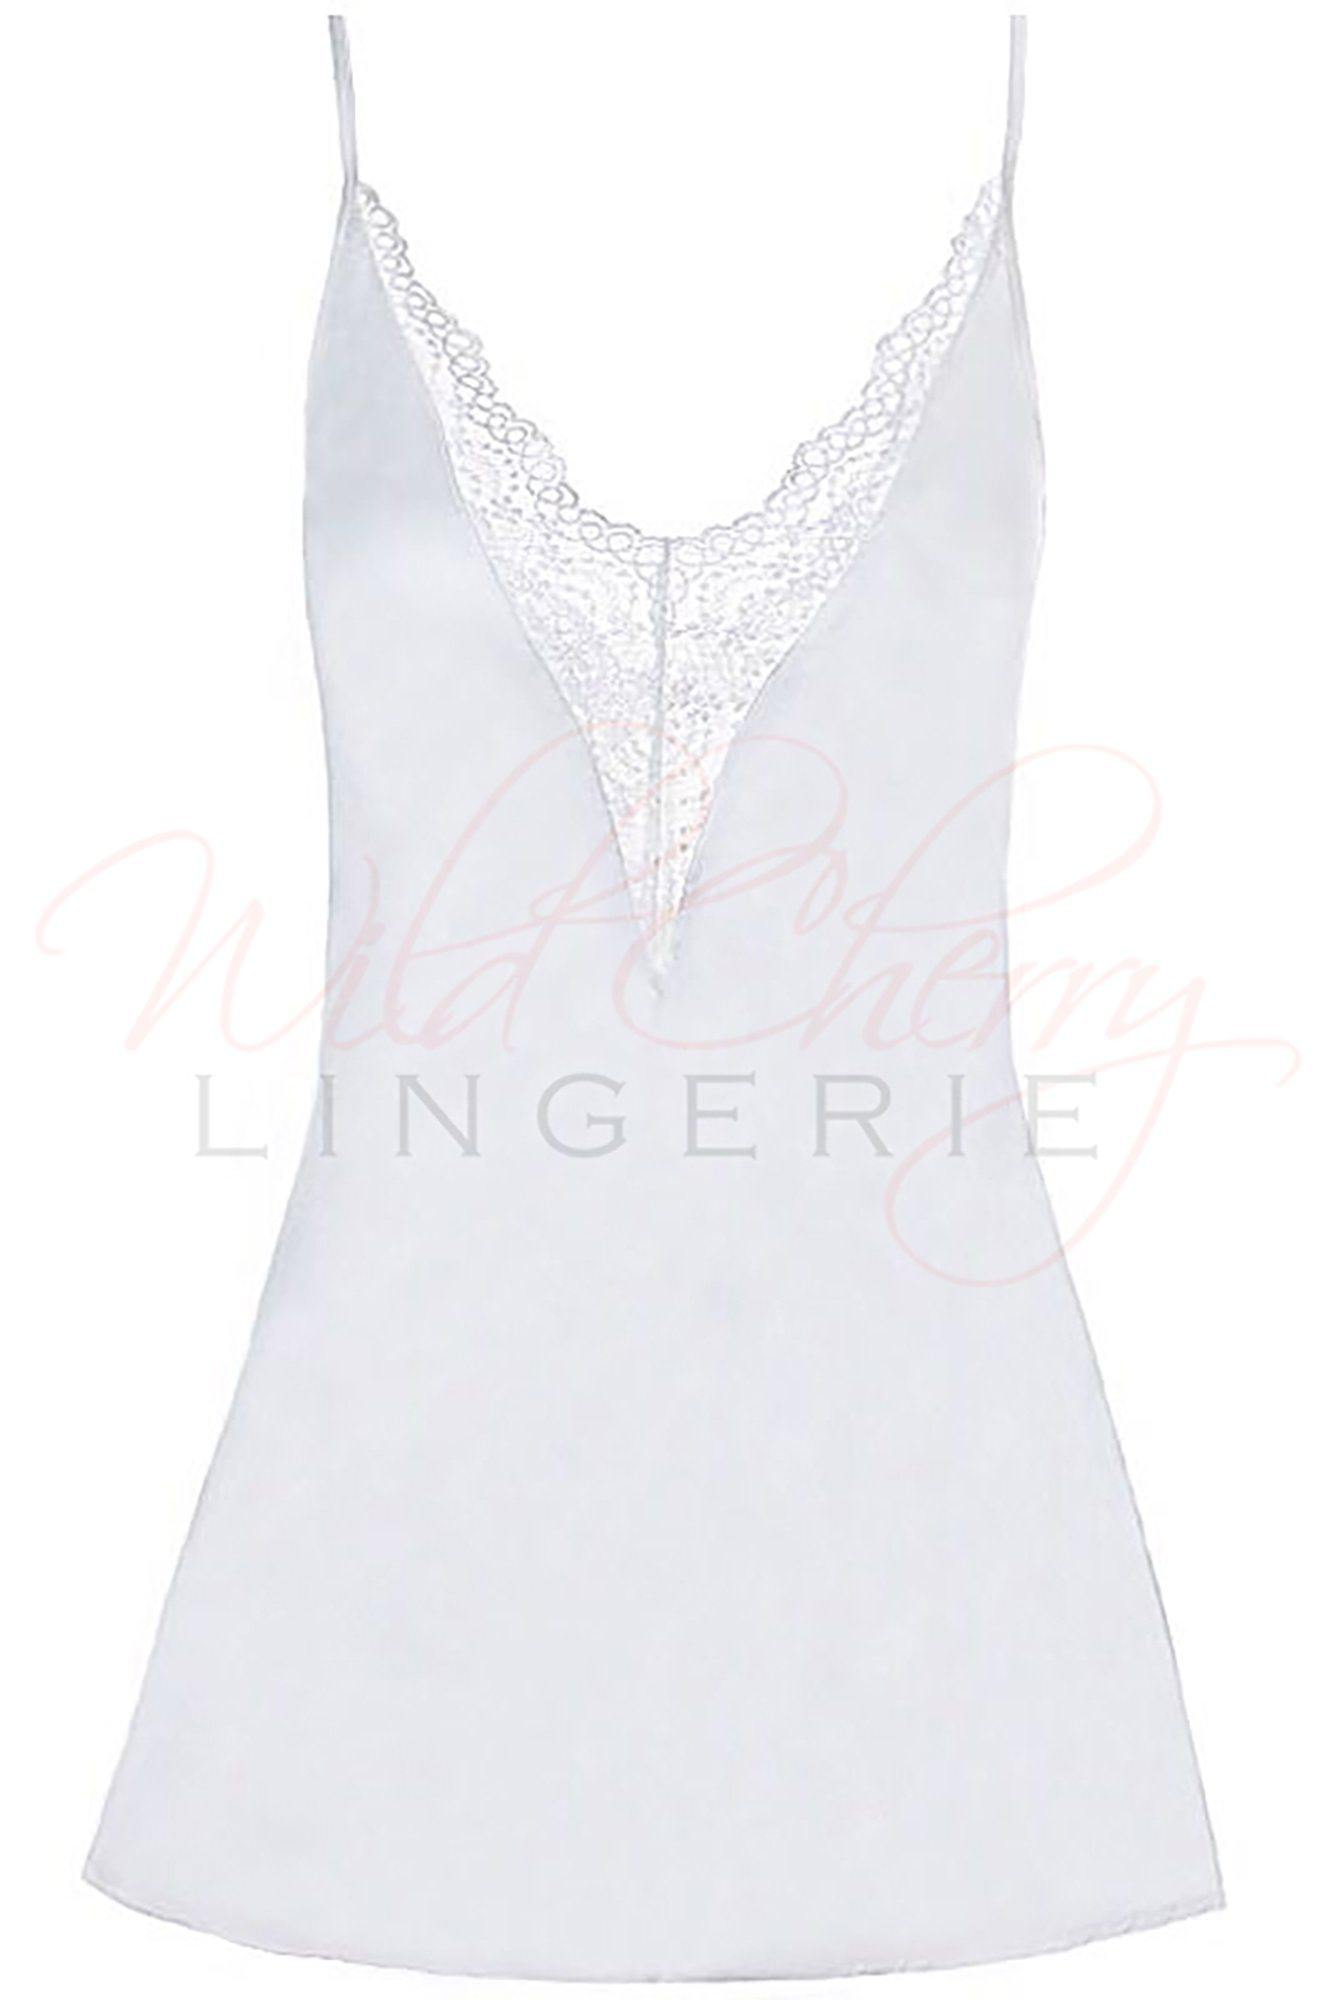 Pure Innocence White Babydoll